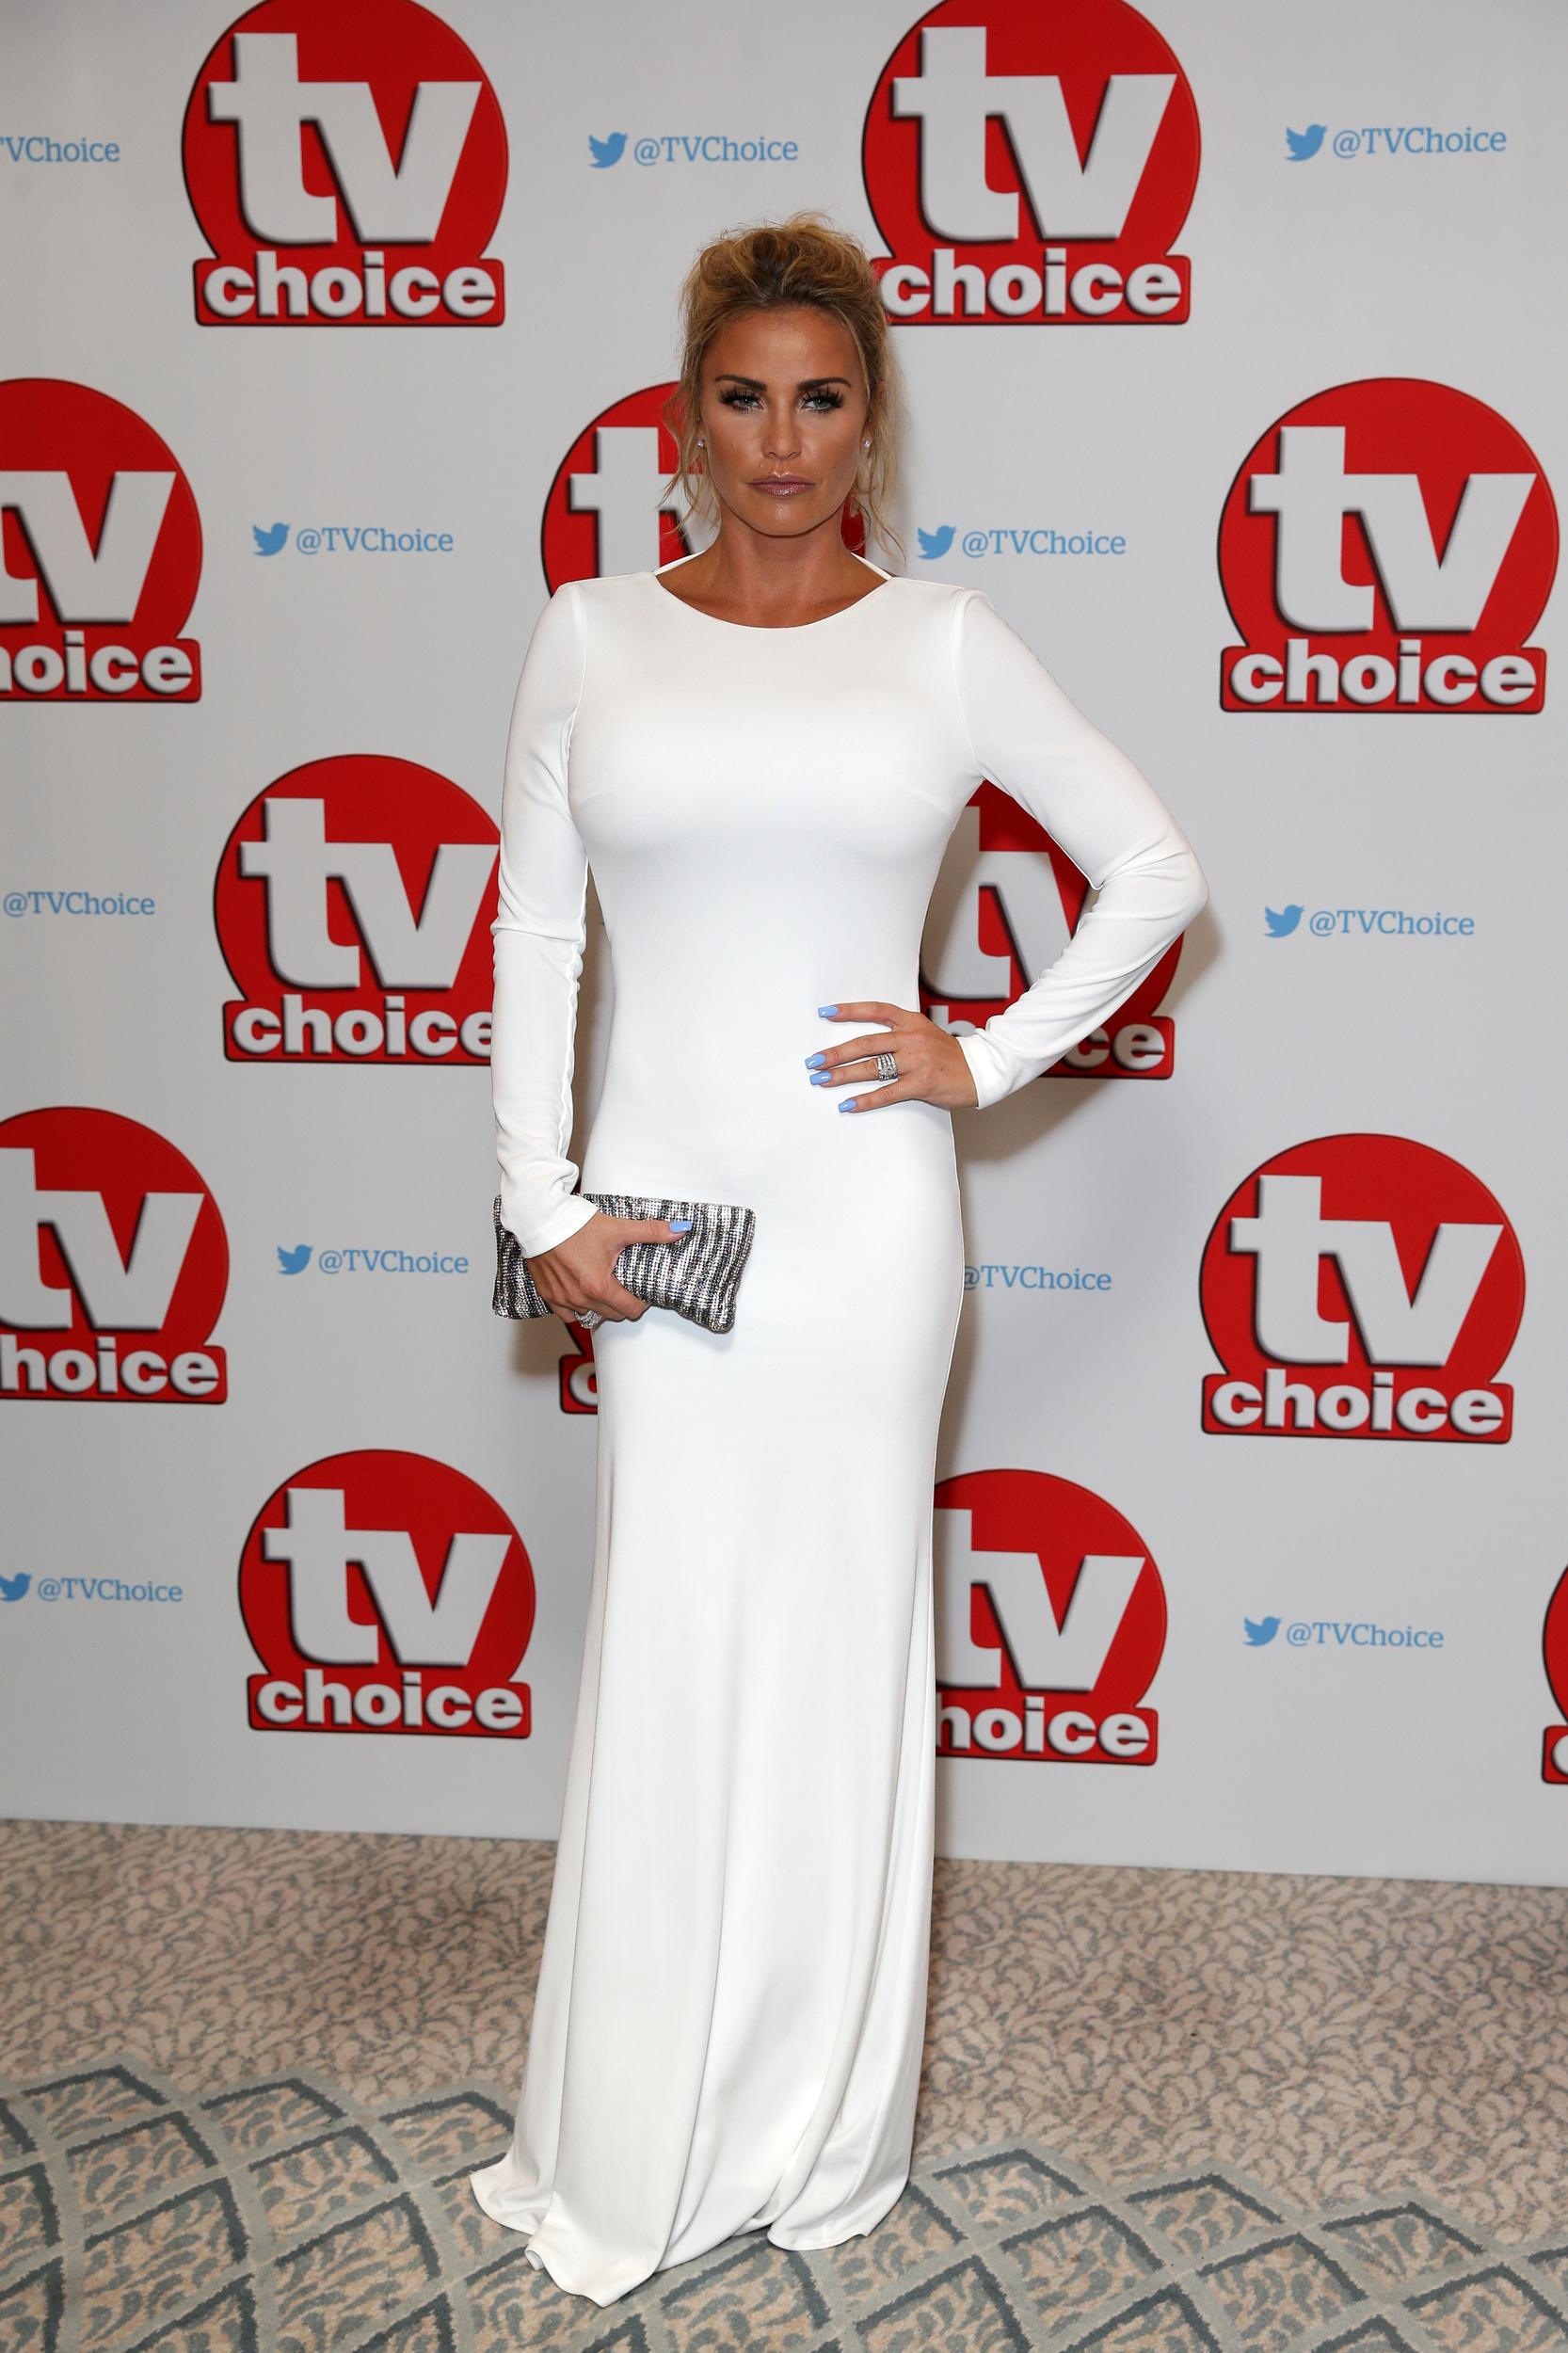 Katie Price arriving for the TV Choice Awards 2016 held at The Dorchester Hotel, Park Lane, London. PRESS ASSOCIATION Photo. Picture date: Monday September 5, 2016. See PA story SHOWBIZ TVChoice. Photo credit should read: Daniel Leal-Olivas/PA Wire